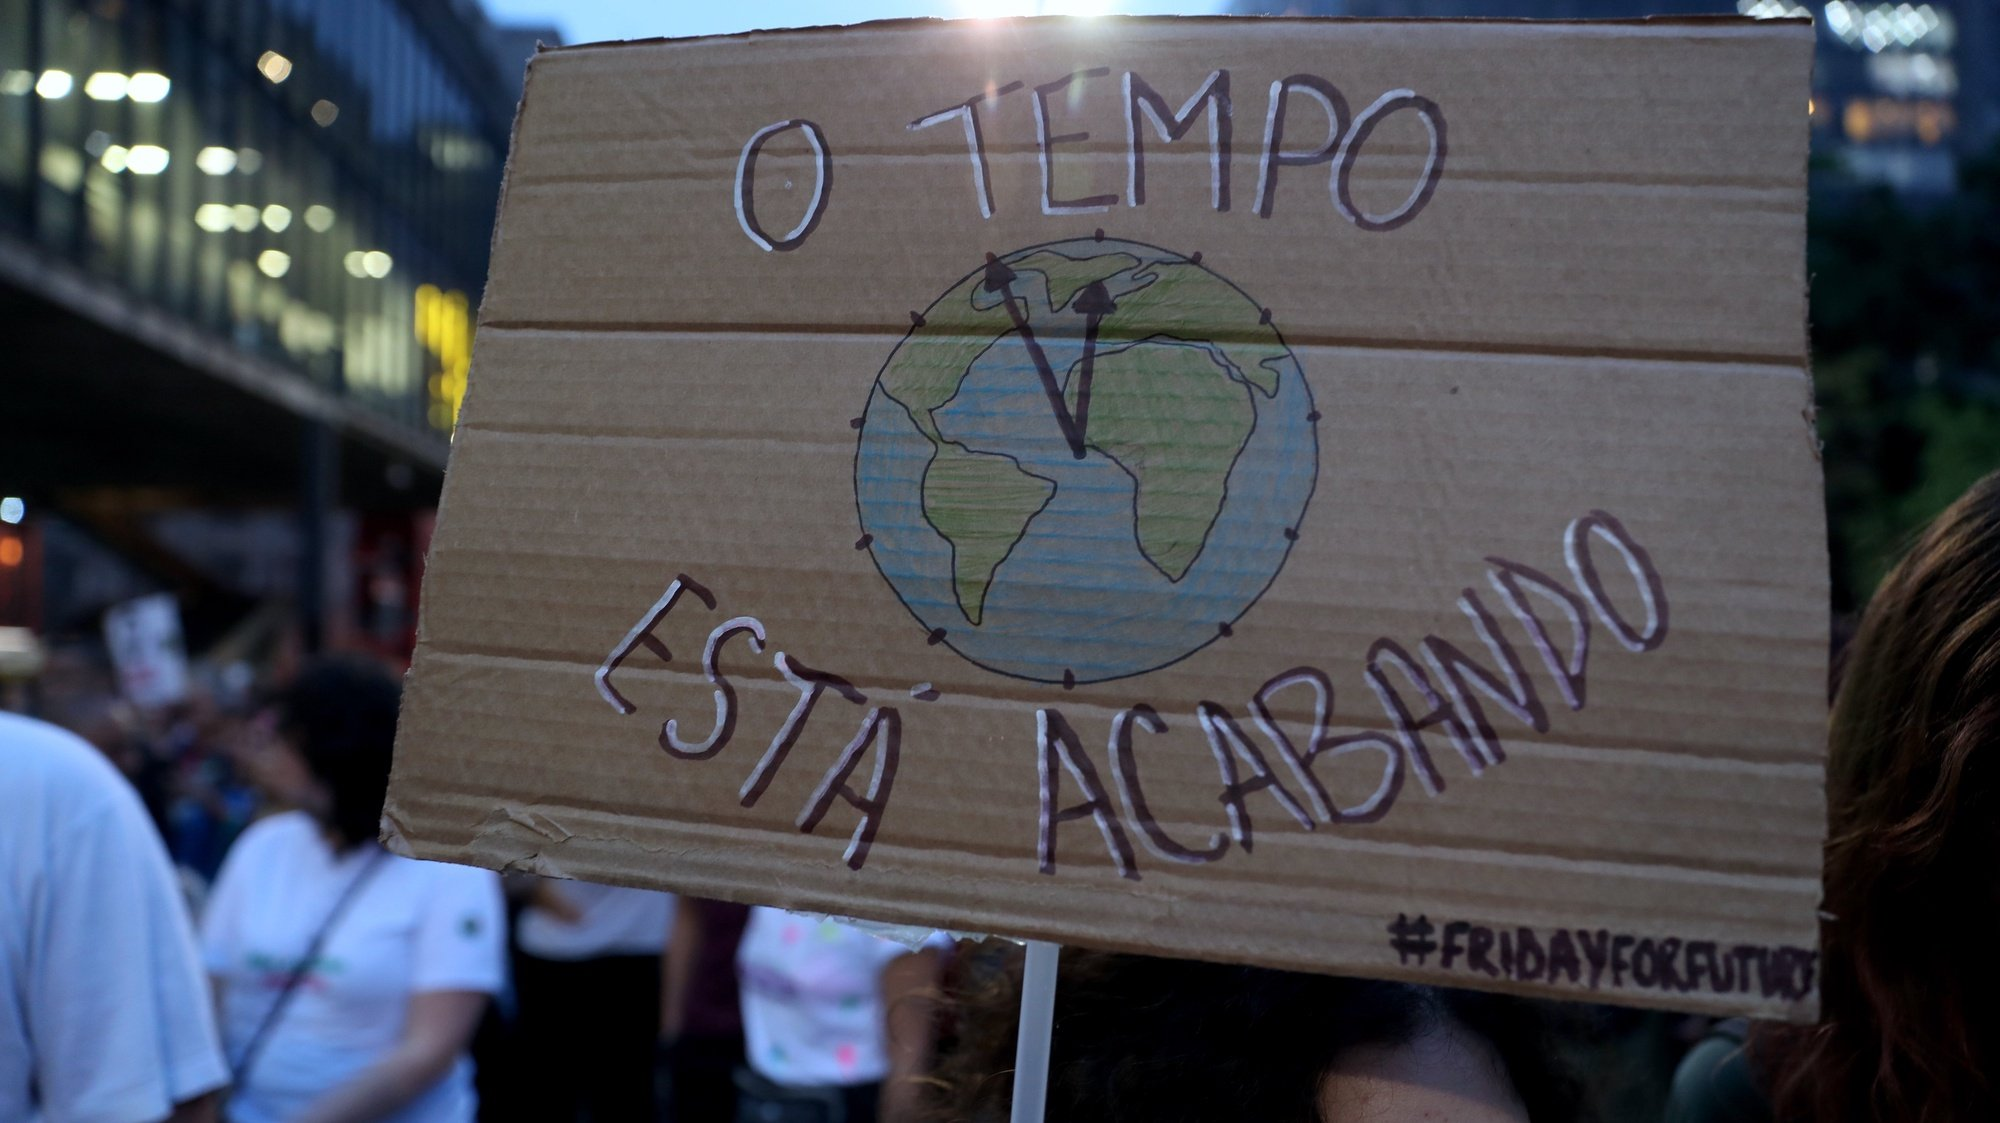 epa07857621 Dozens of people demonstrate on the occasion of the global climate strike, in Sao Paulo, Brazil, 20 September 2019. Millions of people around the world are participating in protests to demand concrete action on climate issues. The global climate strike is held only a few days before the UN Climate Summit, to be held in New York and attended by Fridays For Future representative activist Greta Thunberg.  EPA/Fernando Bizerra Jr.